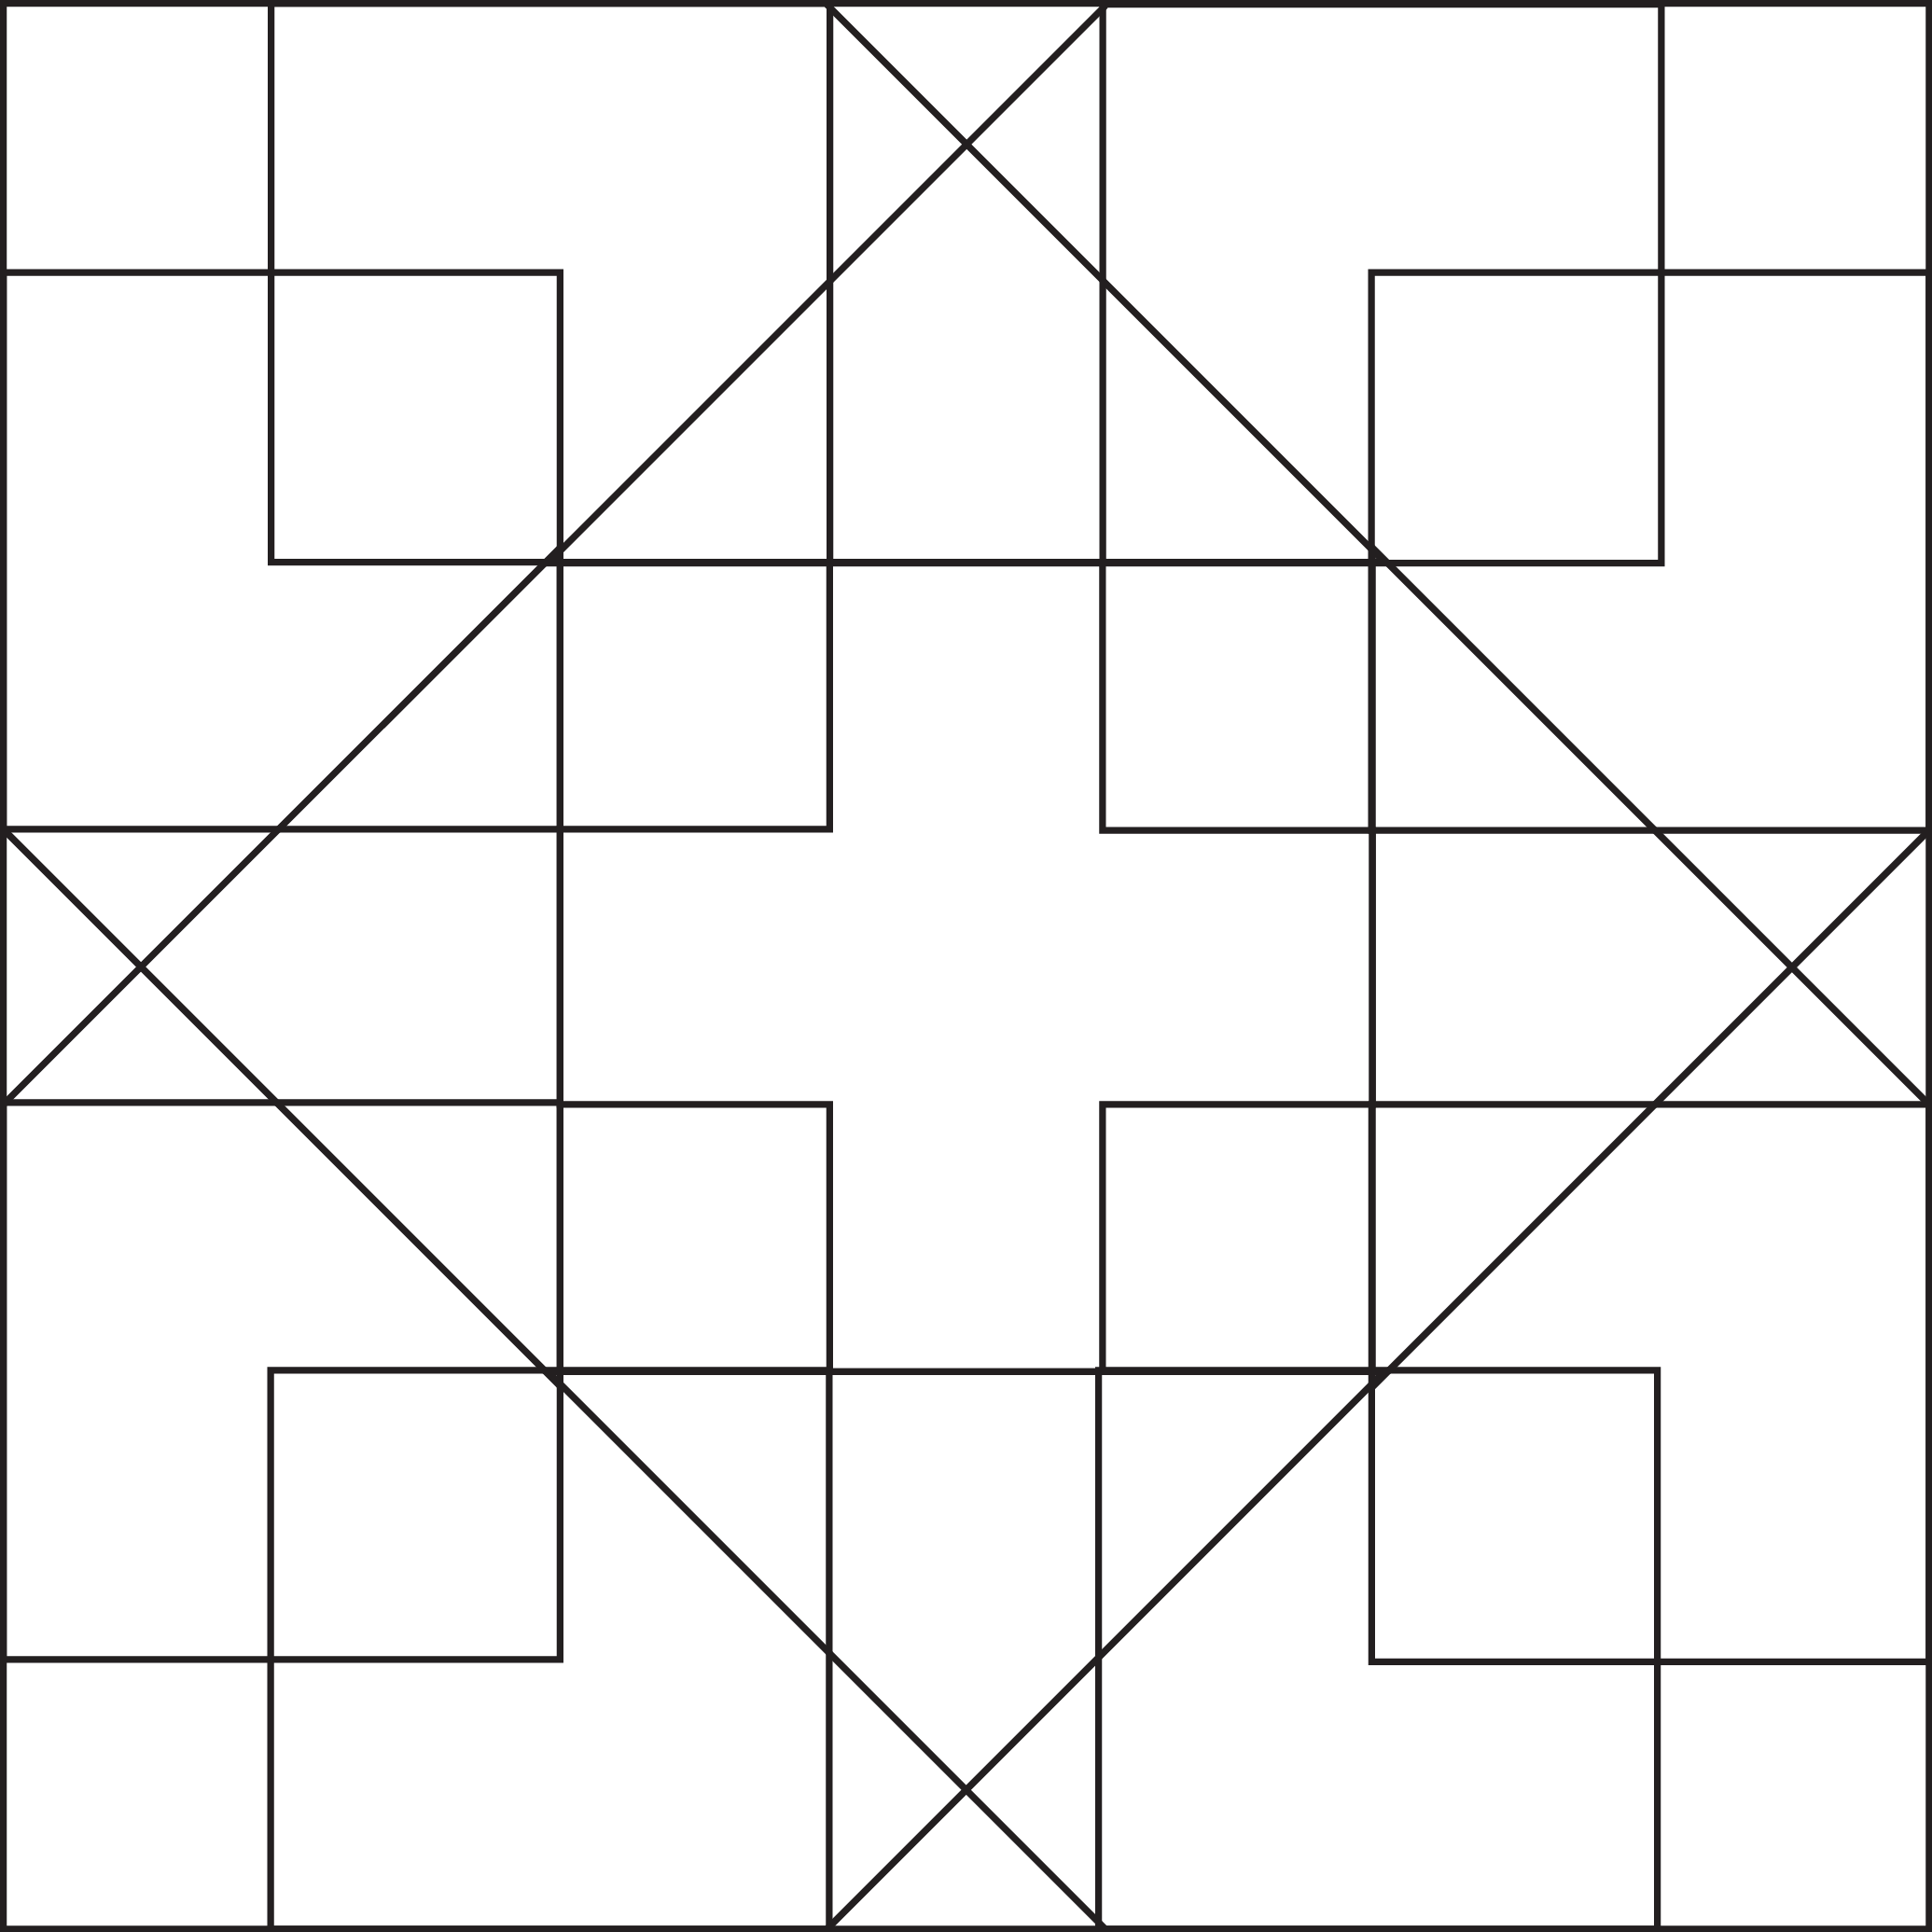 STATE_14_QUILT7.png